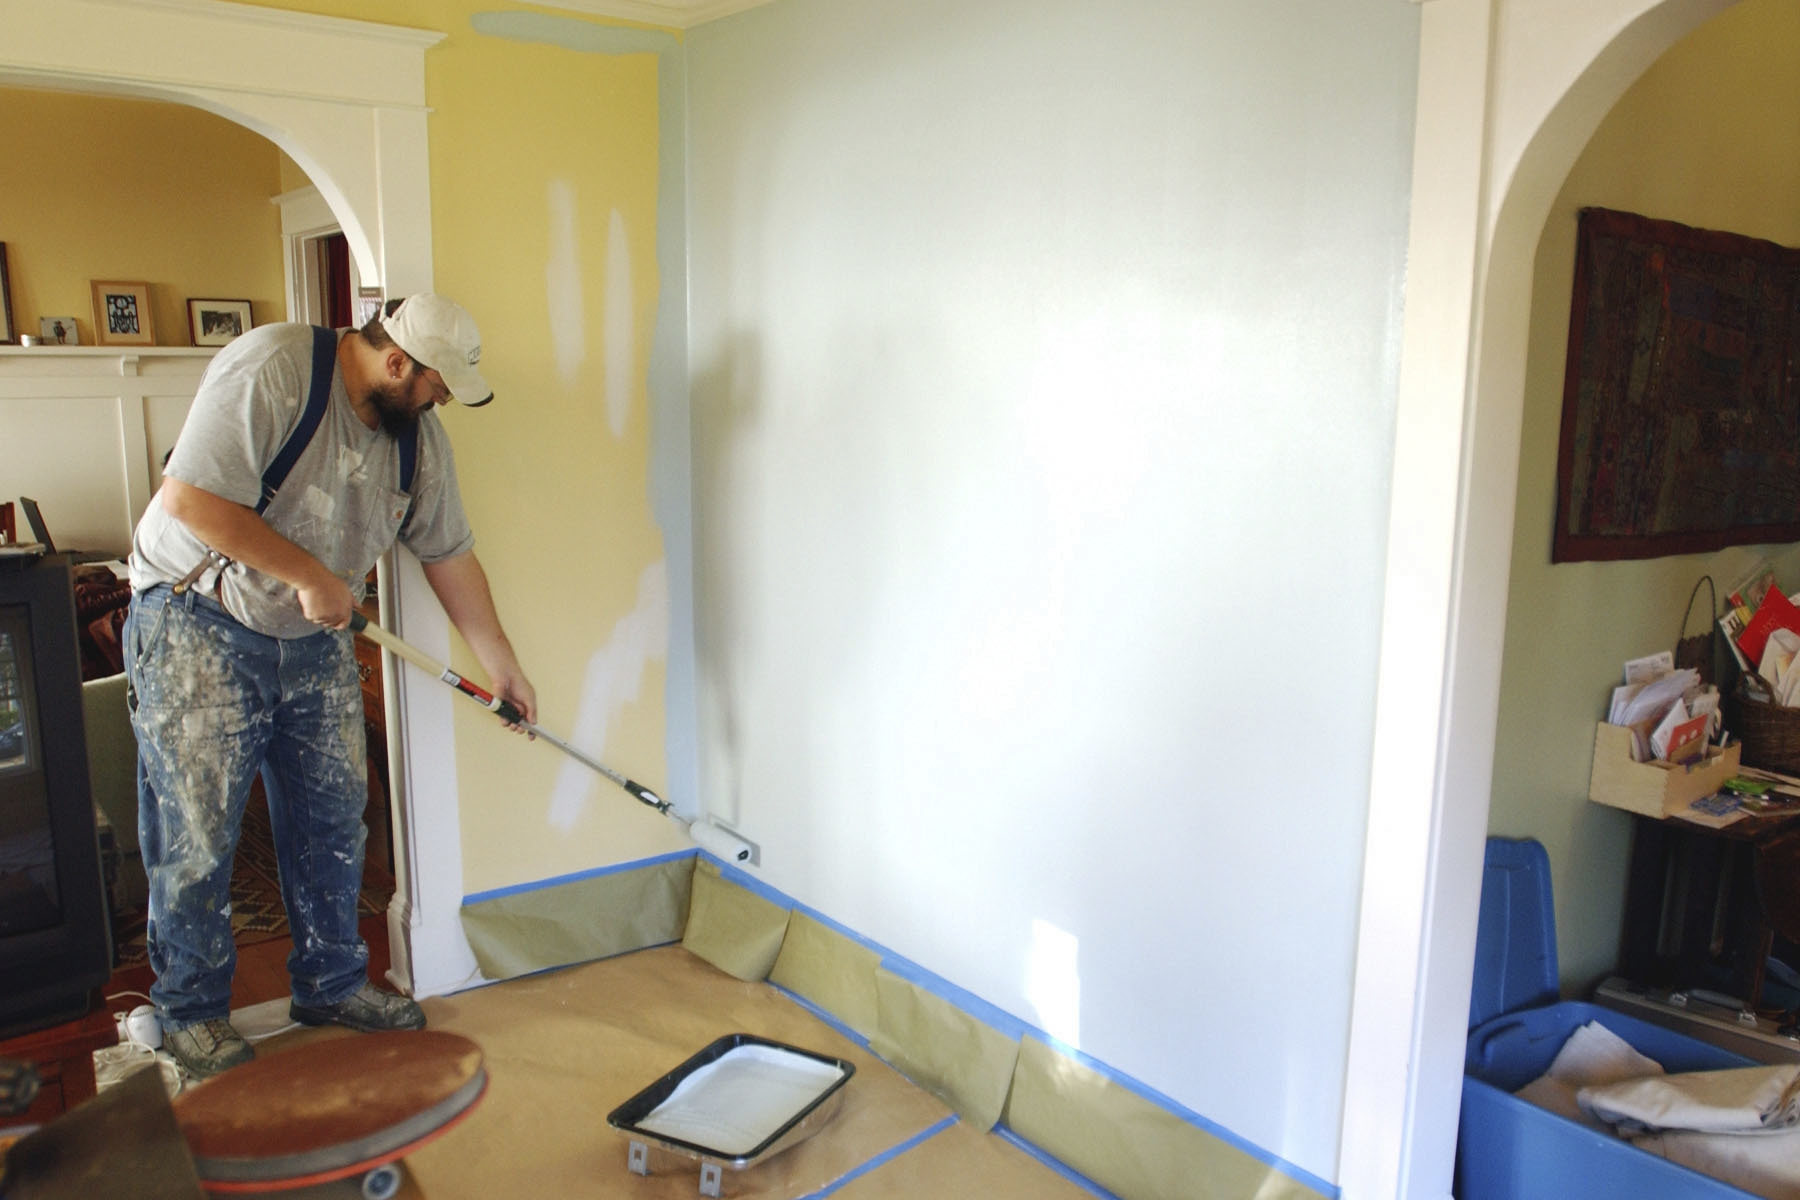 FILE- In this Dec. 5, 2008, file photo, painting contractor Andrew Lohr finishes the first coat on his living room wall in Portland, Ore. Home improvements can rejuvenate a stale dwelling. A fresh coat of paint on the walls can make for a quick makeover. (AP Photo/Greg Wahl-Stephens, File)